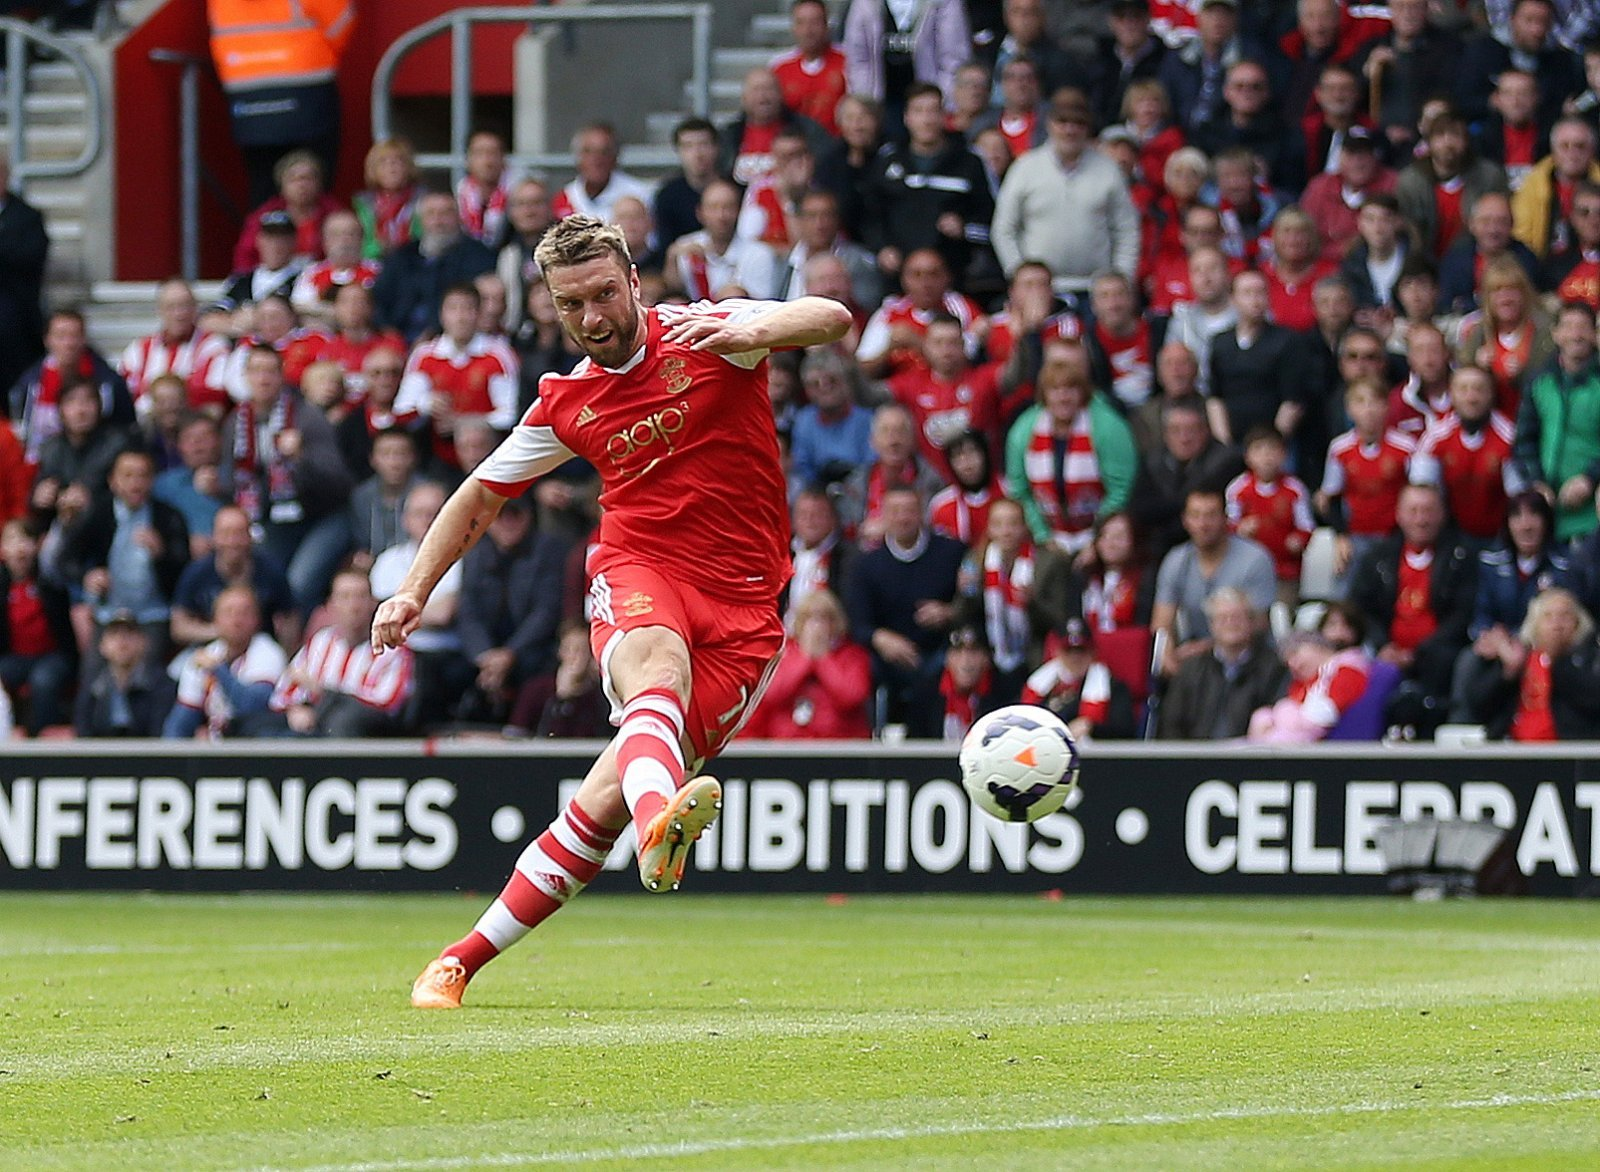 TT Introduces Rickie Lambert: The man who should never have left Southampton